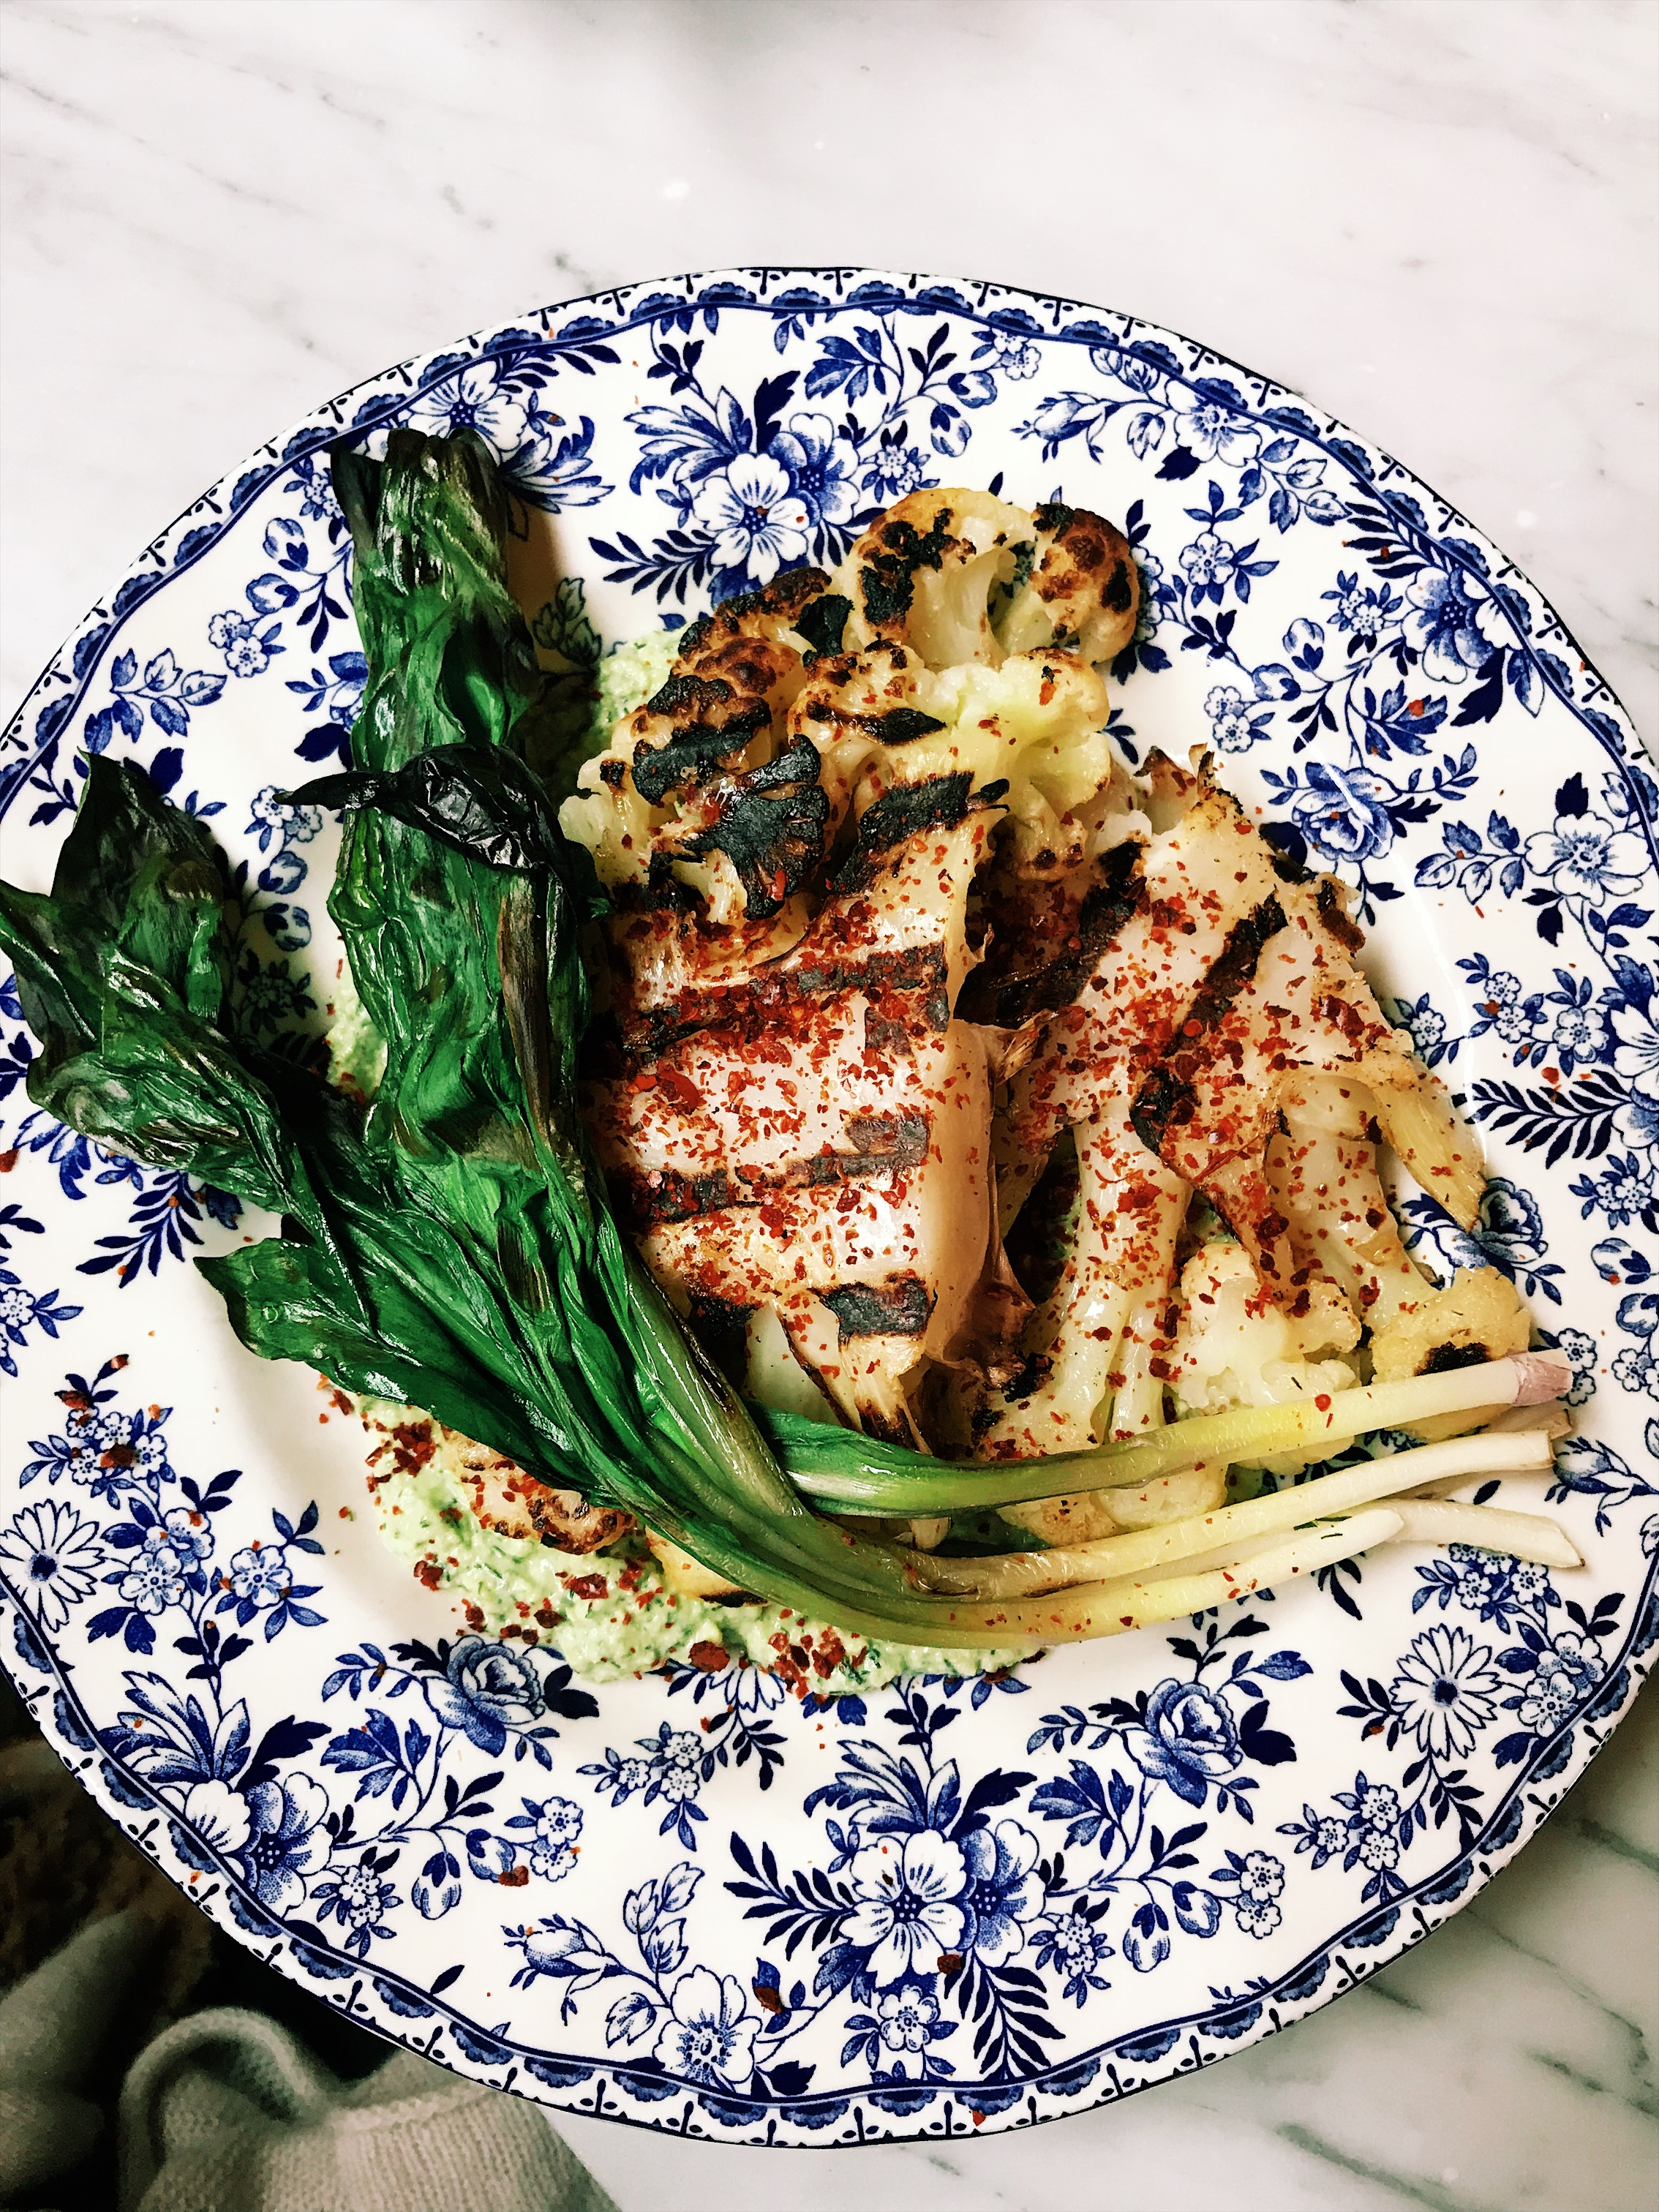 Herby cauliflower steak with grilled ramps from The Allis